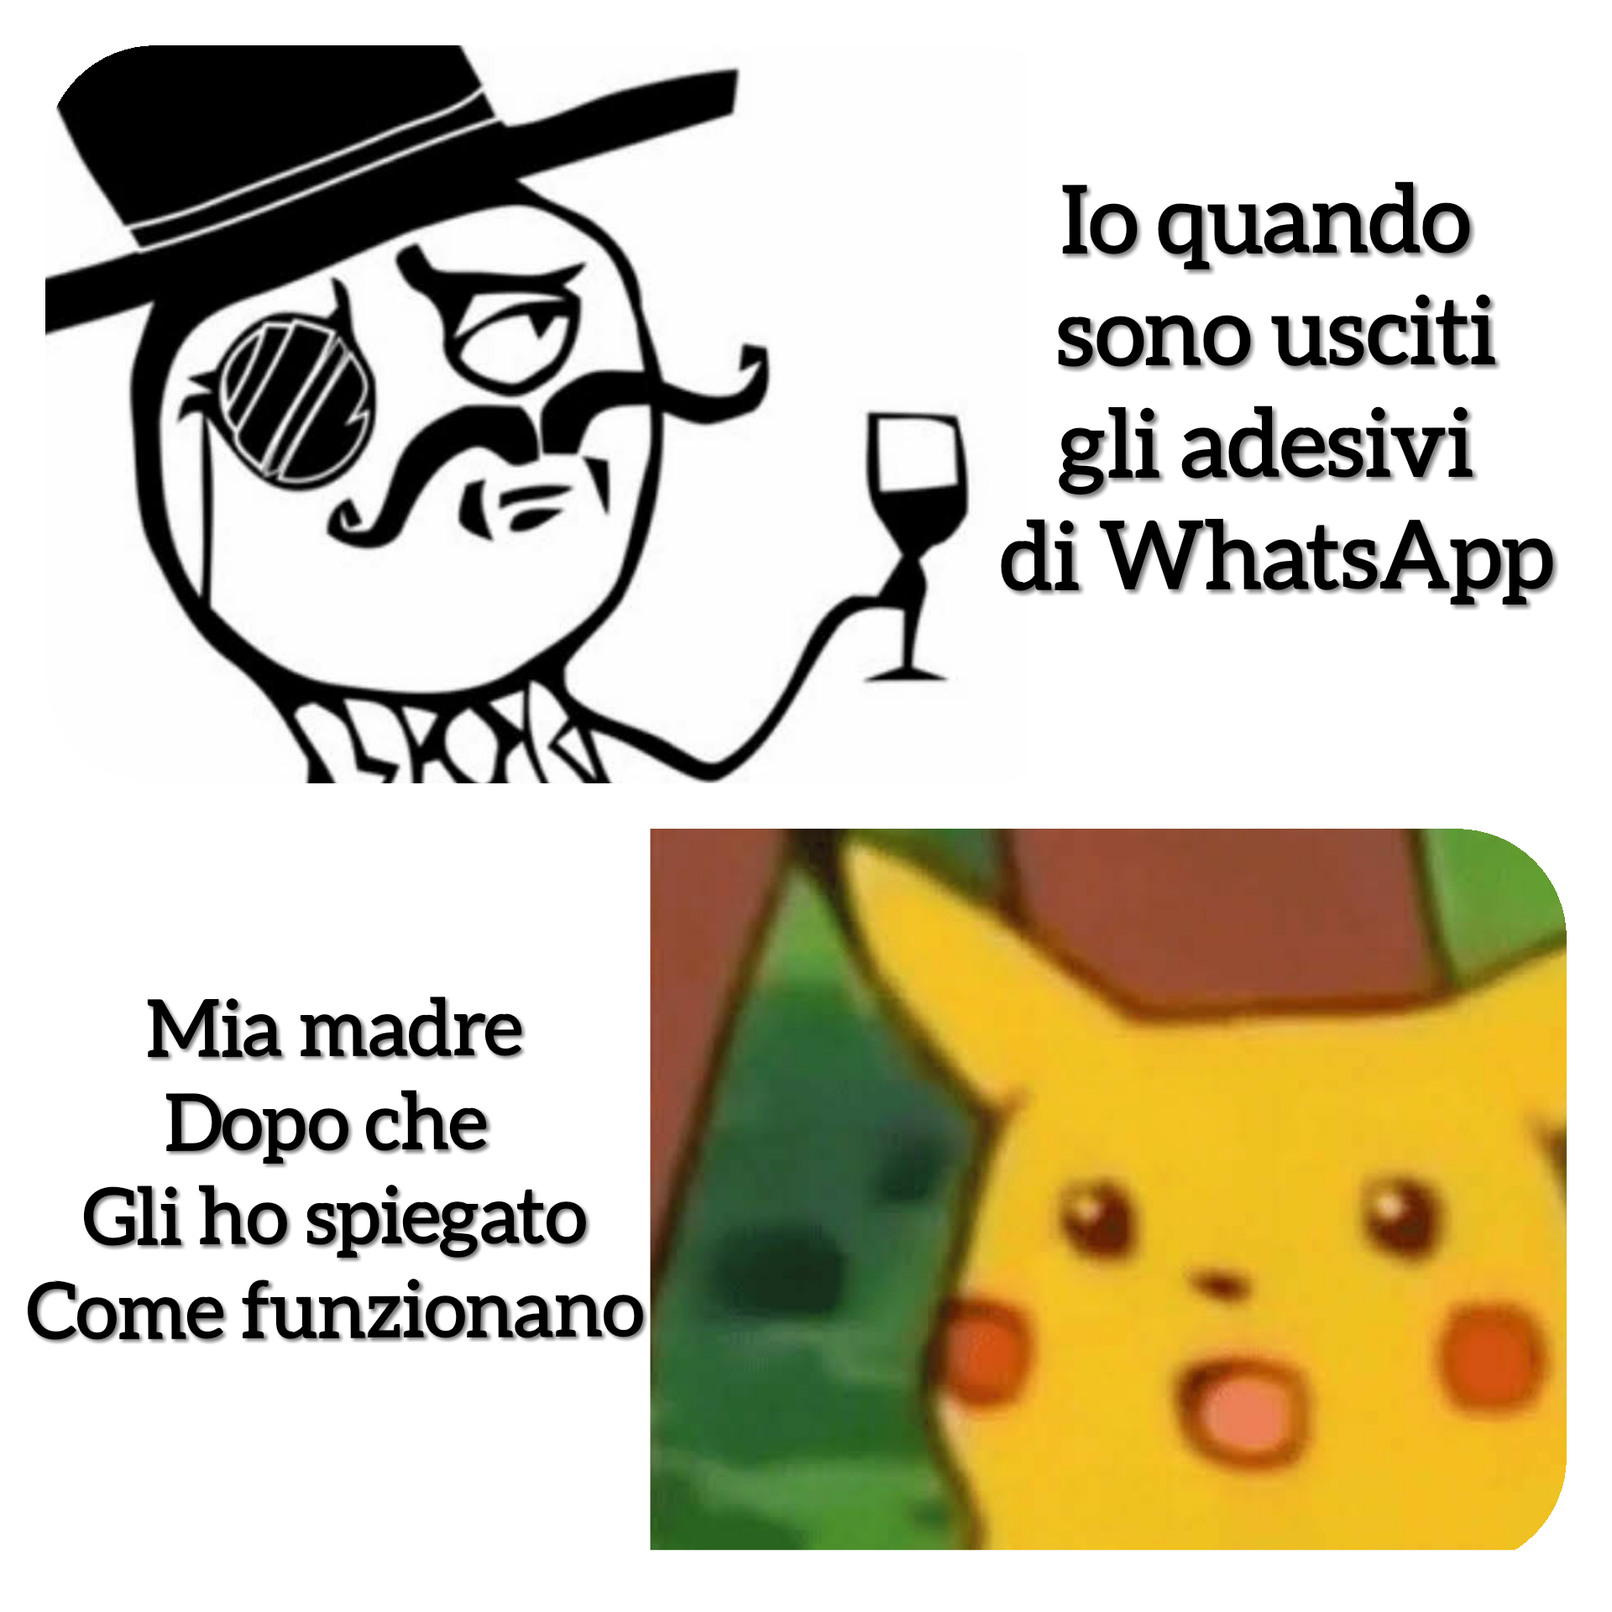 I nuovi stikers di WhatsApp - meme